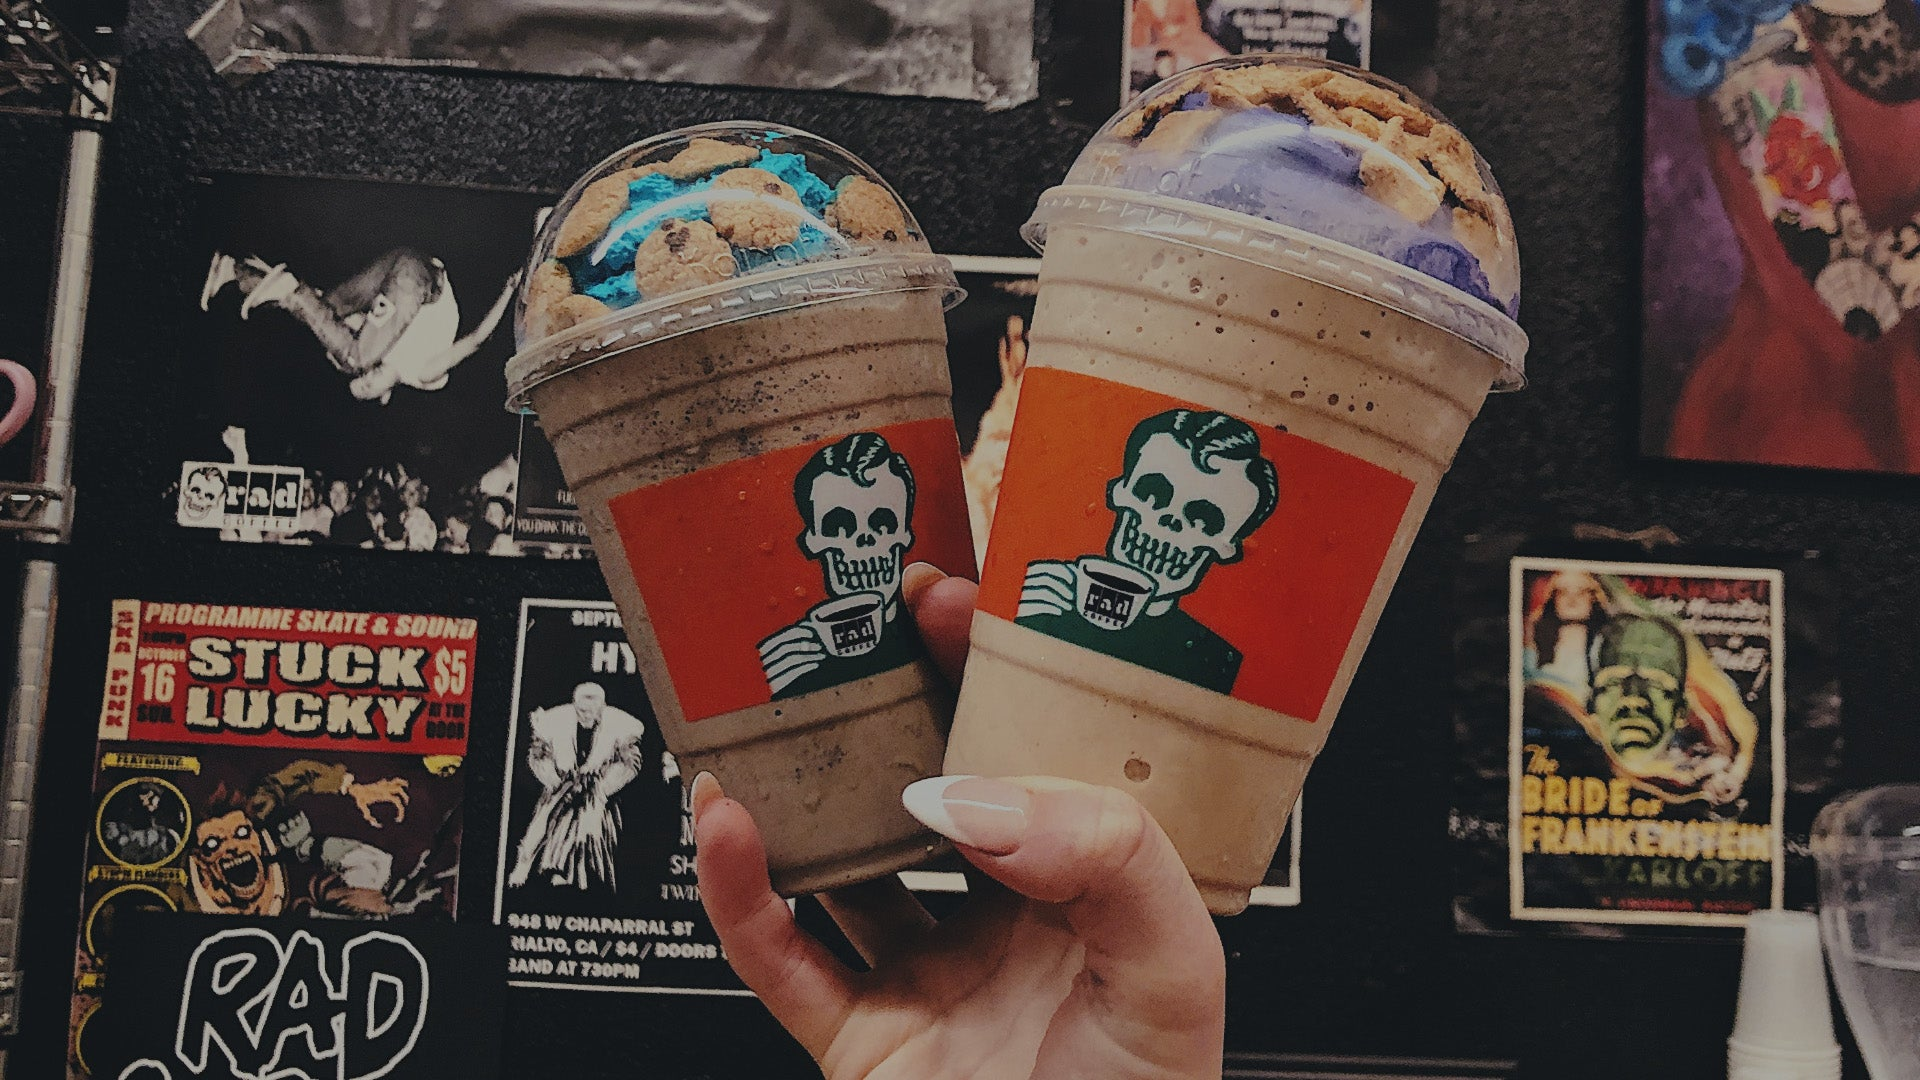 Two Rad Coffee Drinks - Cookies N' Scream - Horror Themed Punk Rock Coffee Shop